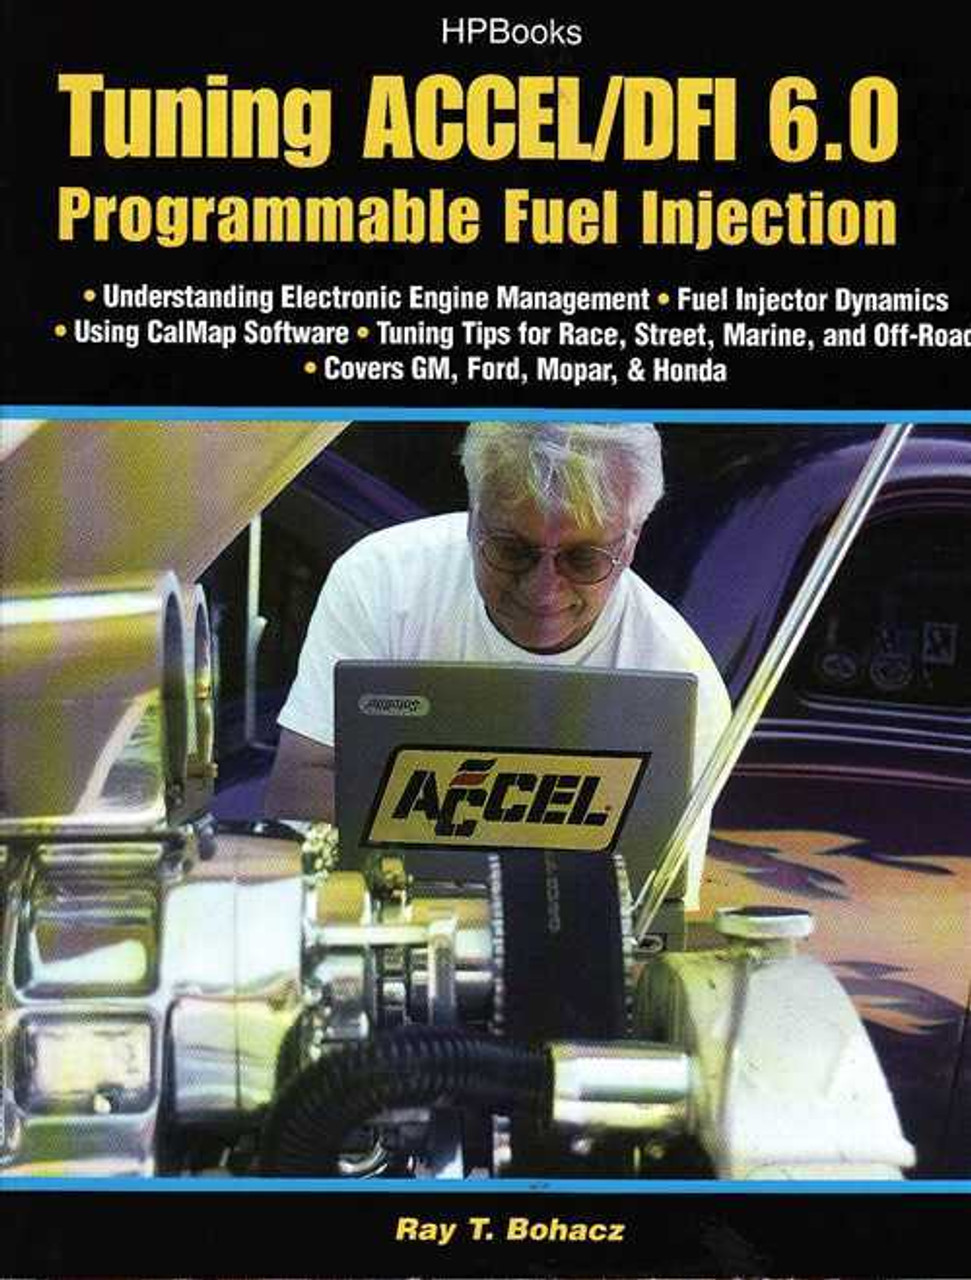 Tuning ACCEL / DFI 6.0 Programmable Fuel Injection on